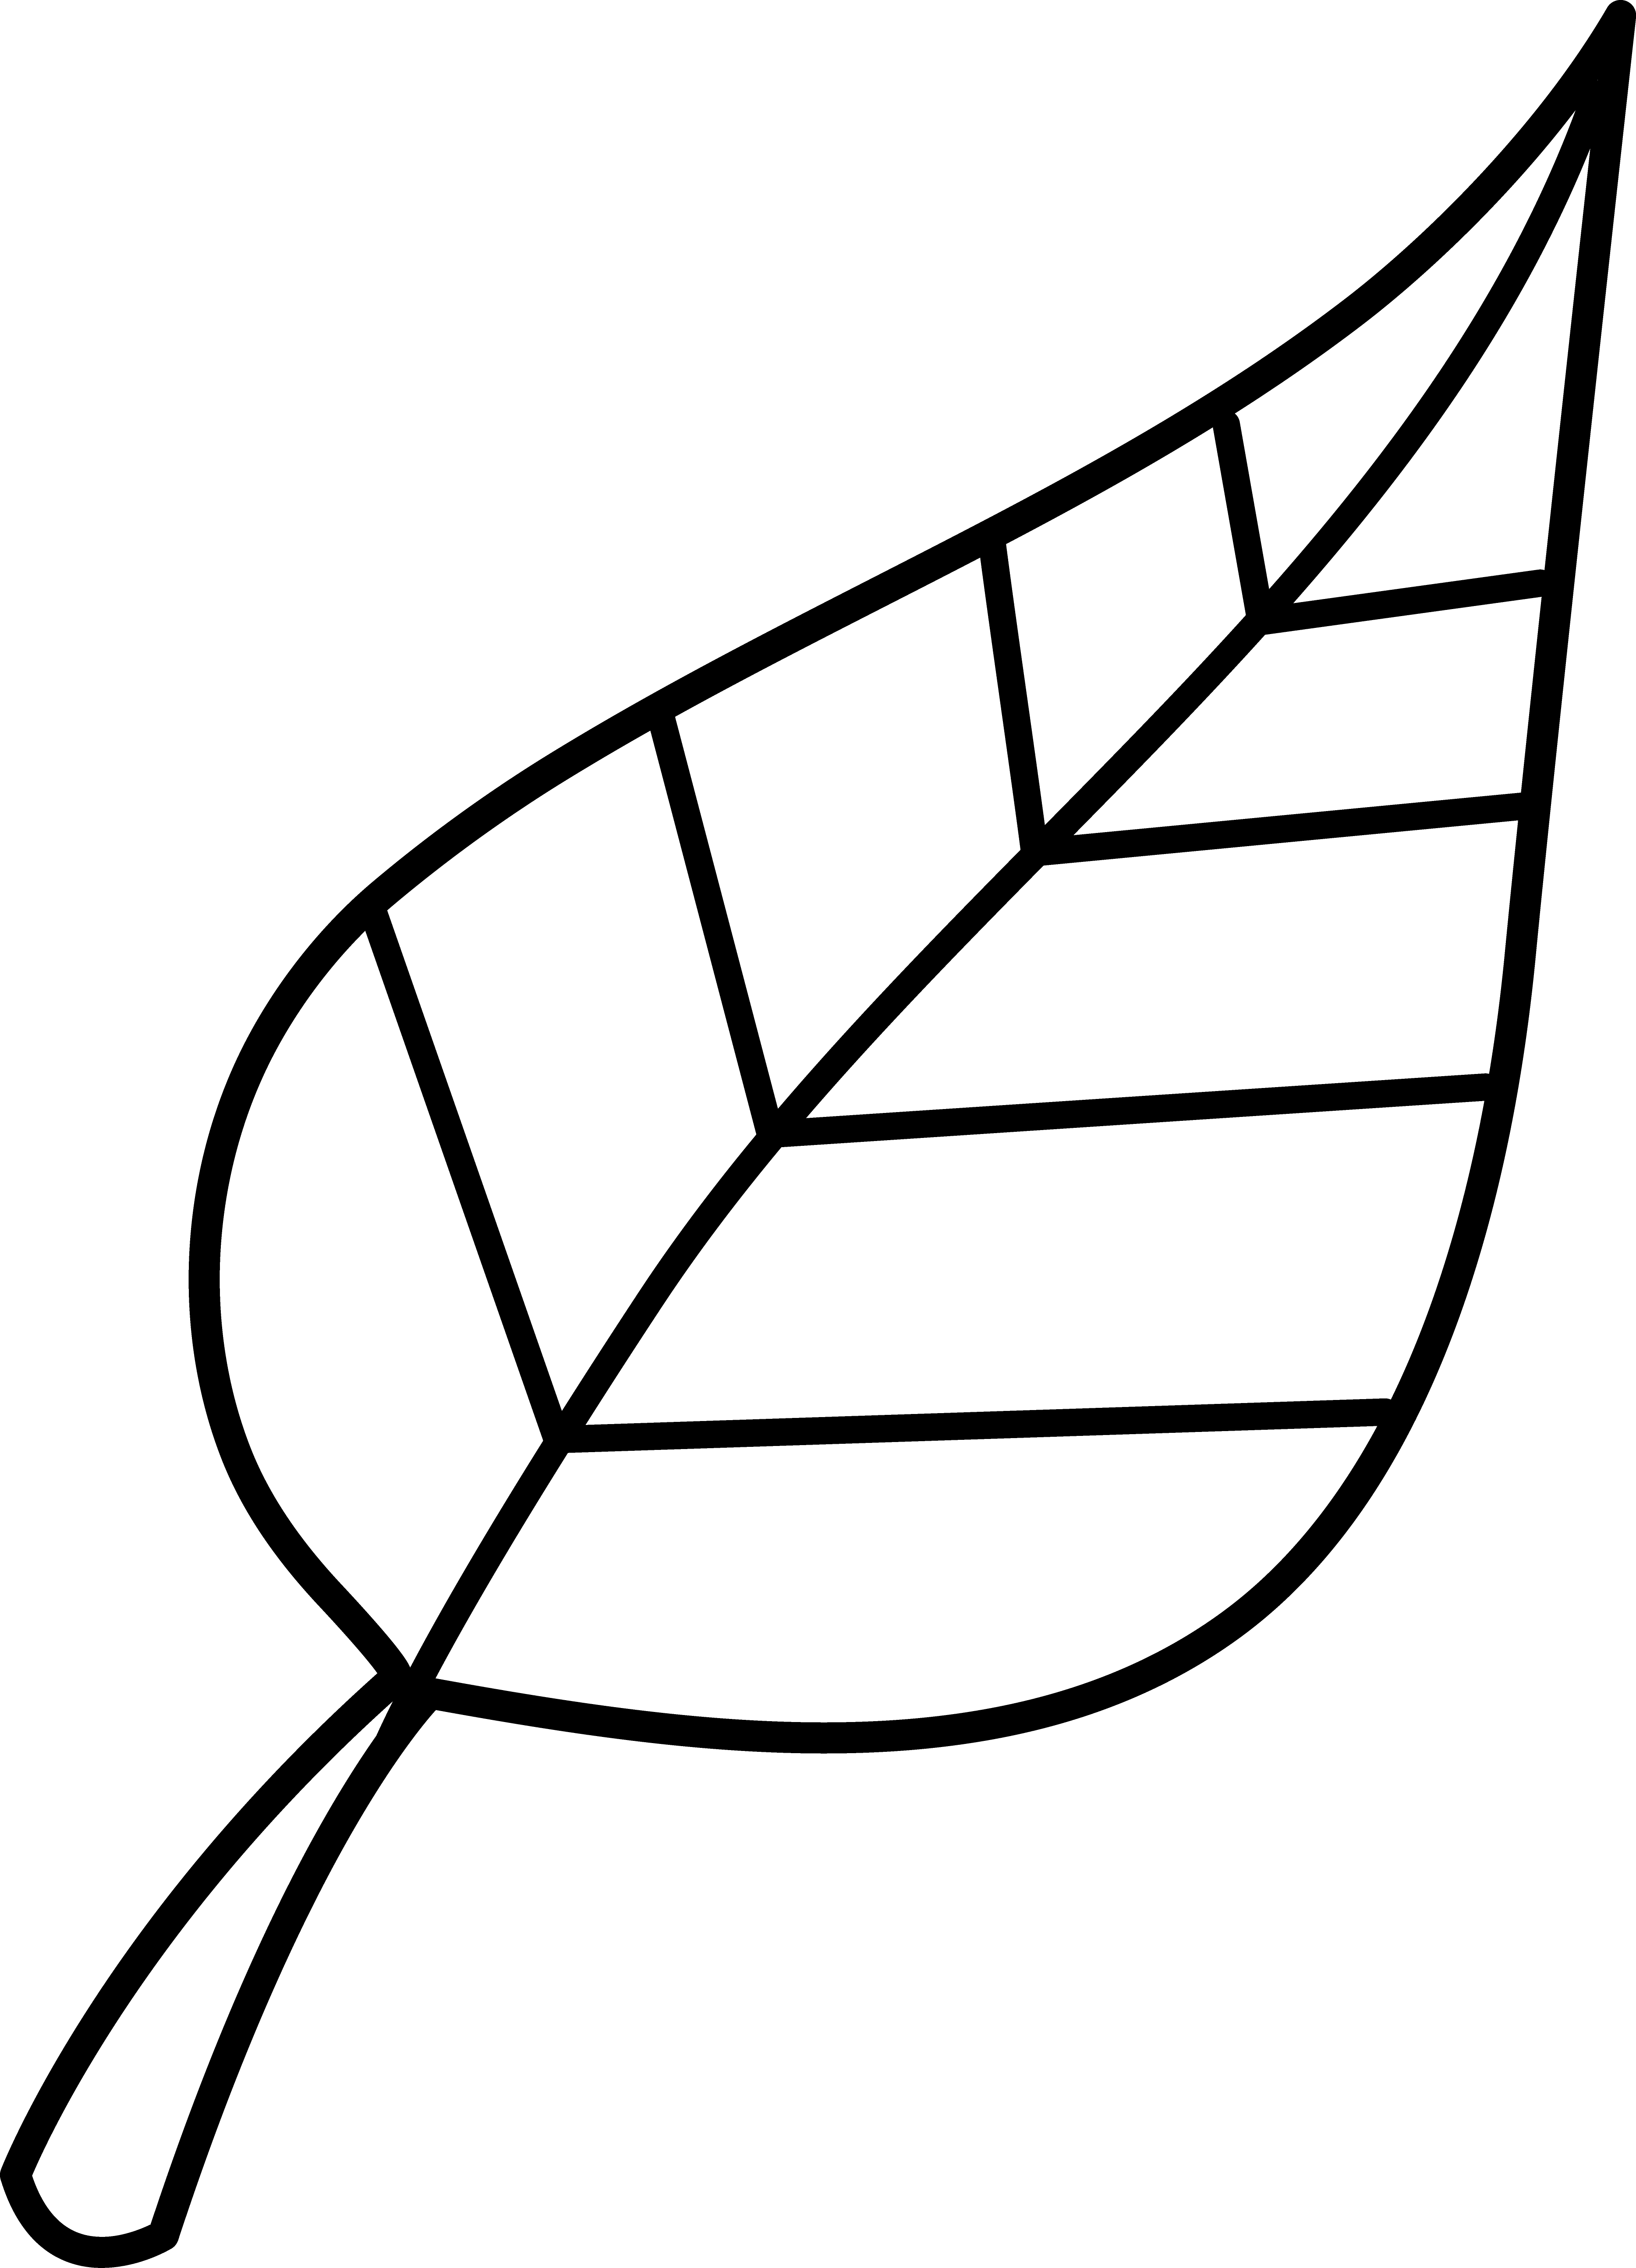 Black and white clipart leaf clip freeuse stock Pin by Emily Clark on Its in the Details | Black, white drawing ... clip freeuse stock